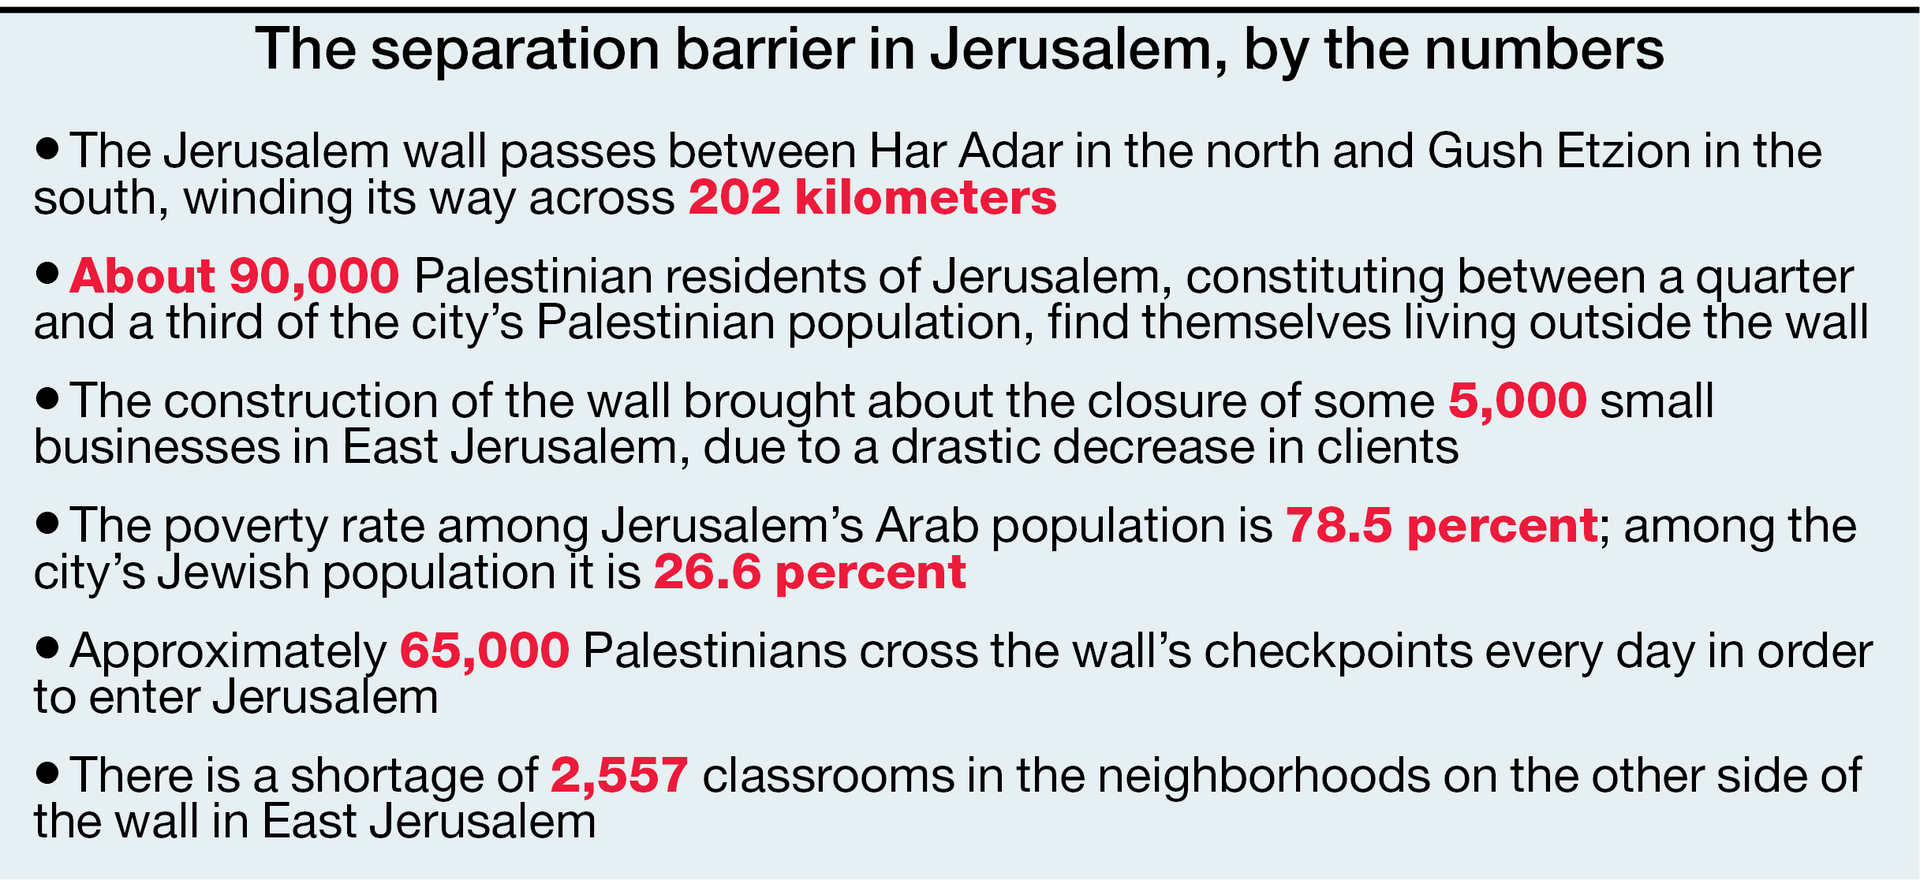 The Jerusalem separation barrier, by the numbers.